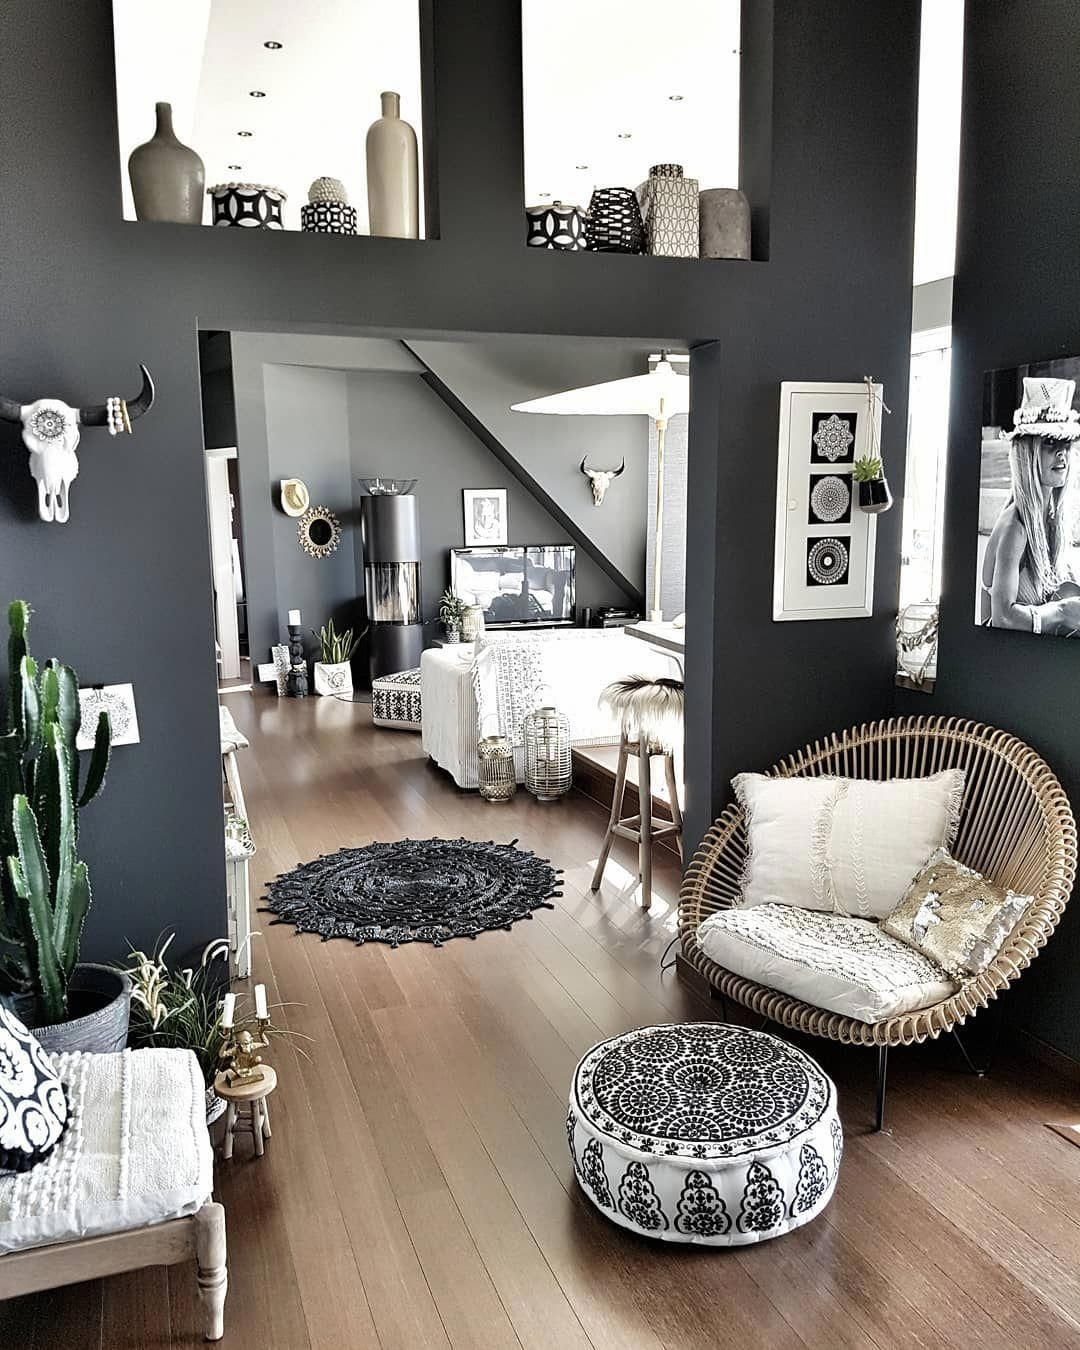 Magnificent Bohemian Modern Living Room On Stunning Pin On Awesome Home Designs Decor On Bohemian Modern Living Room